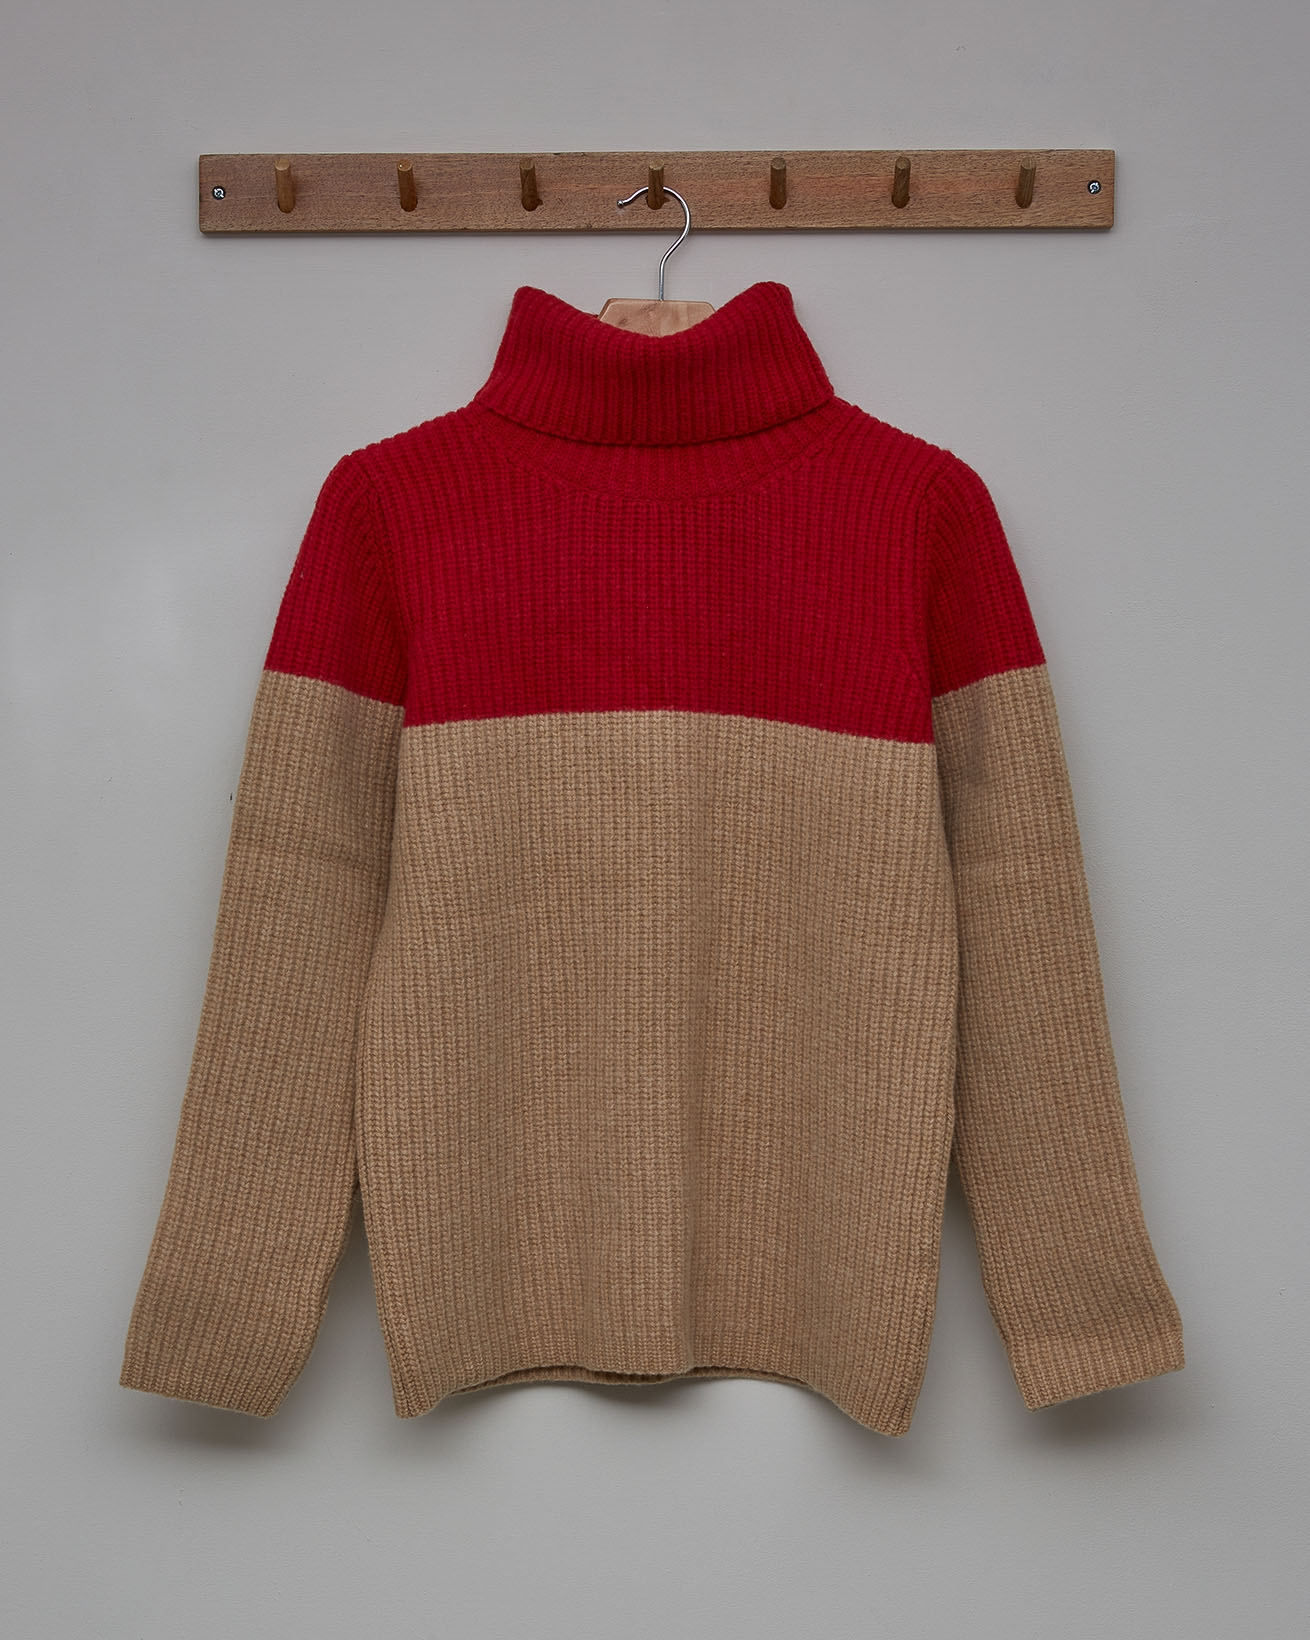 Colourblock Roll Neck - Size Small - Pillarbox Red, Camel - 2362